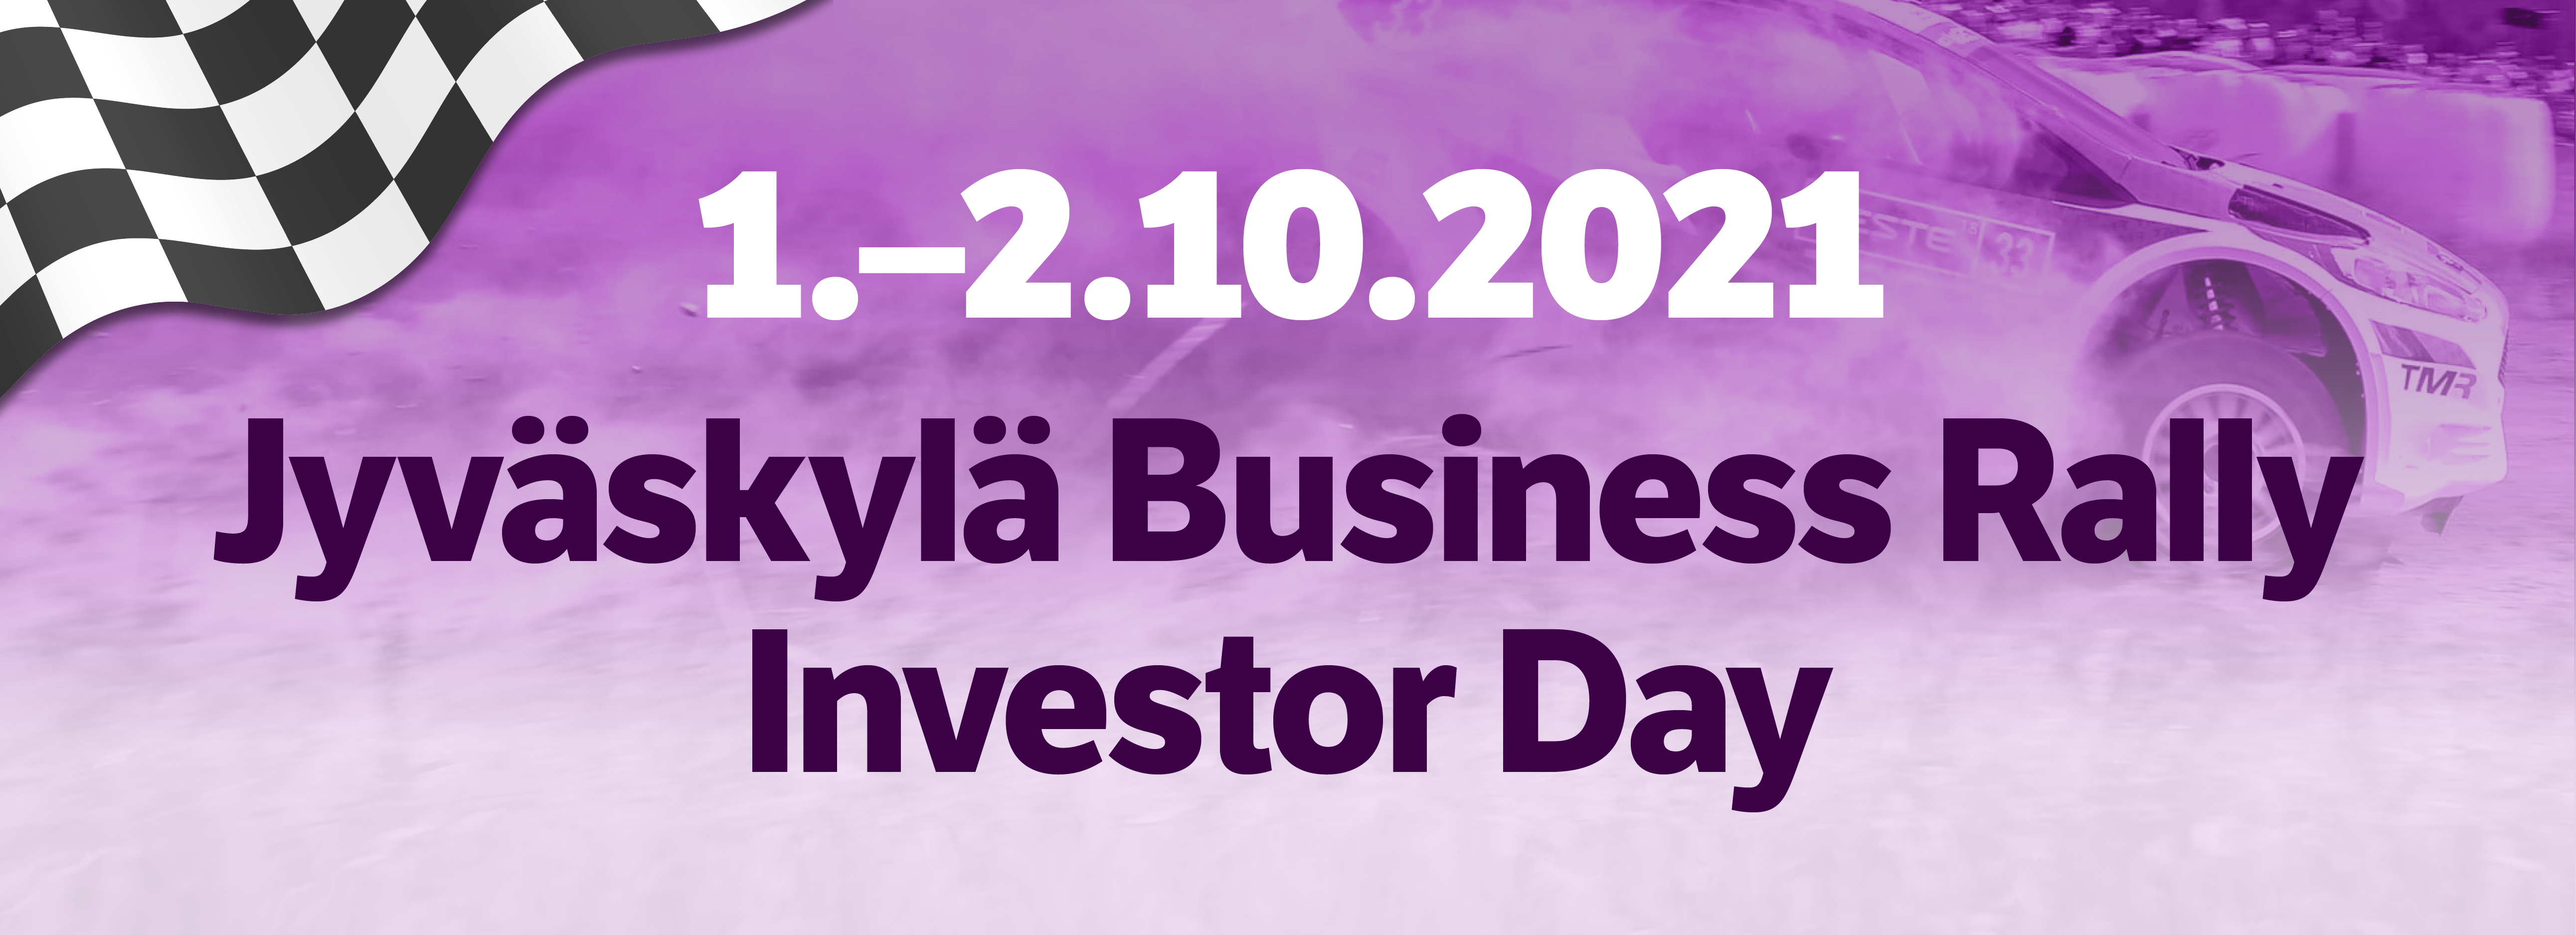 Business Rally investor day - call for startups to apply